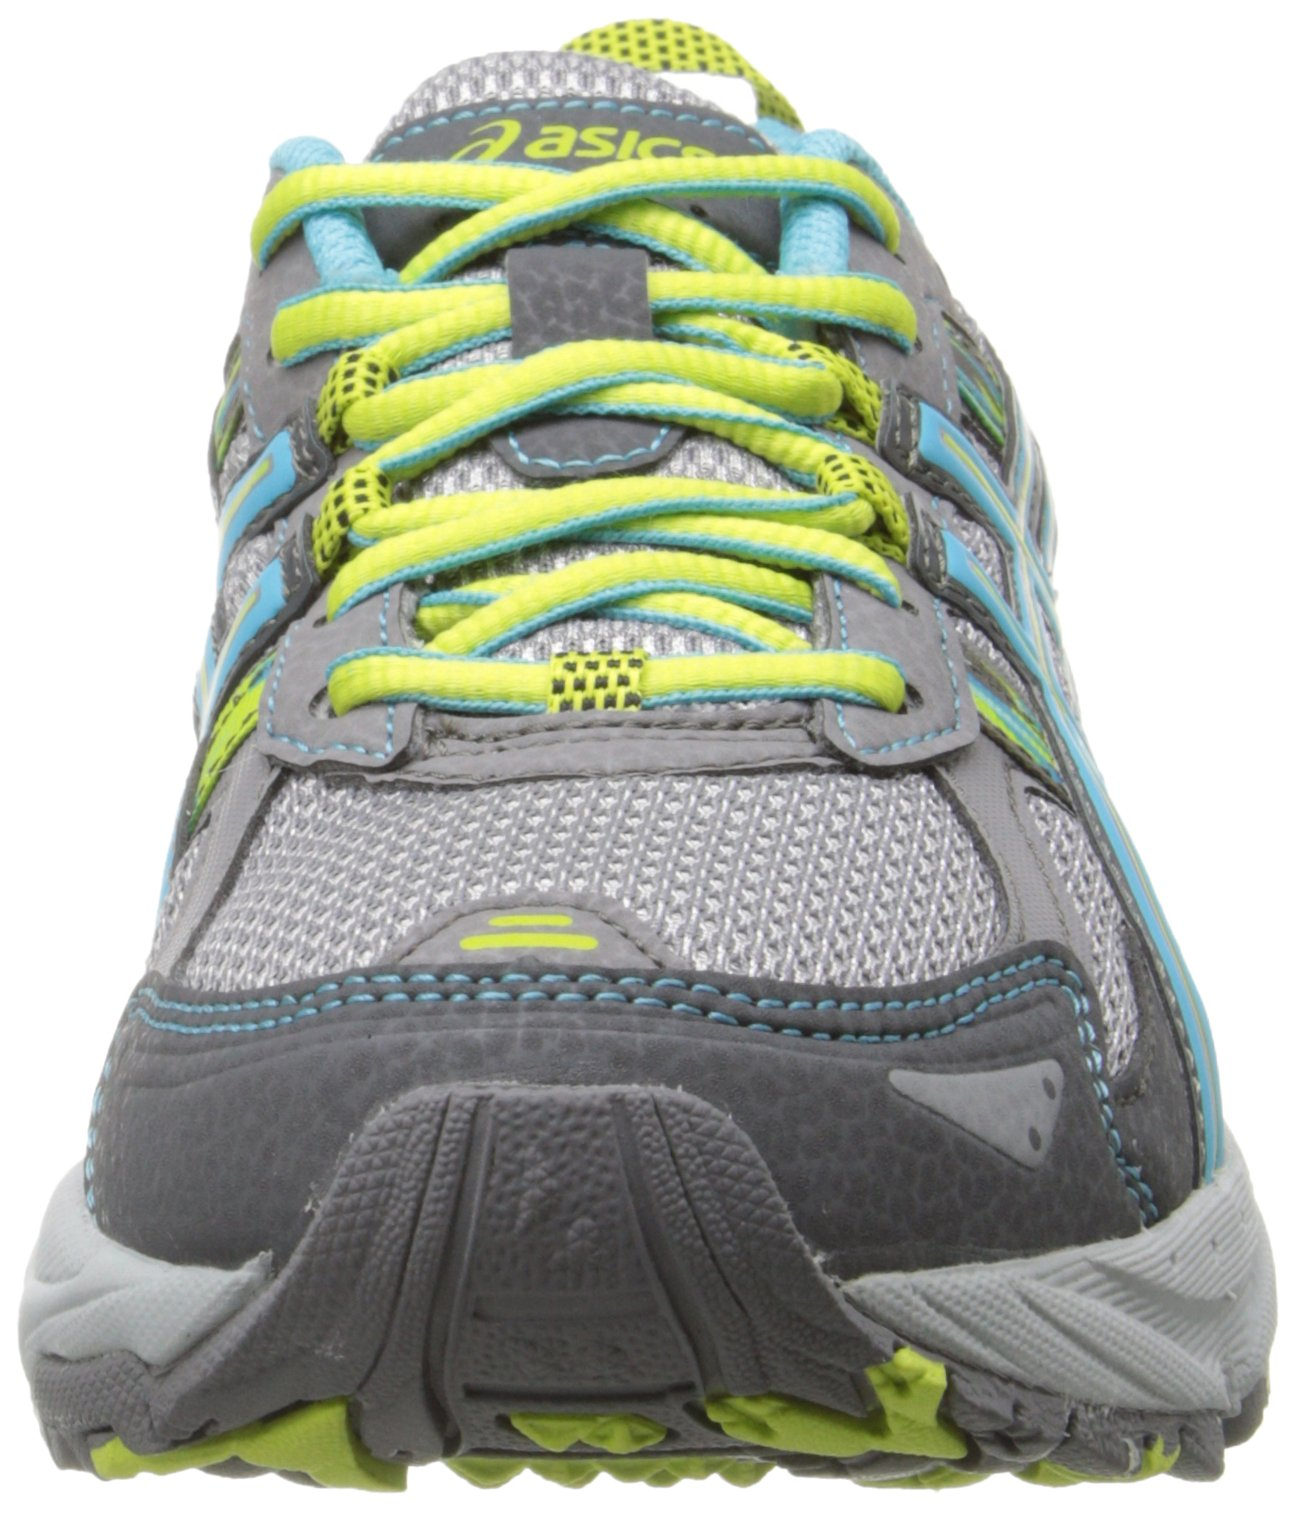 ASICS Women's Gel-Venture 5 Running Shoe, Silver Grey/Turquoise/Lime Punch, 6 M US by ASICS (Image #4)